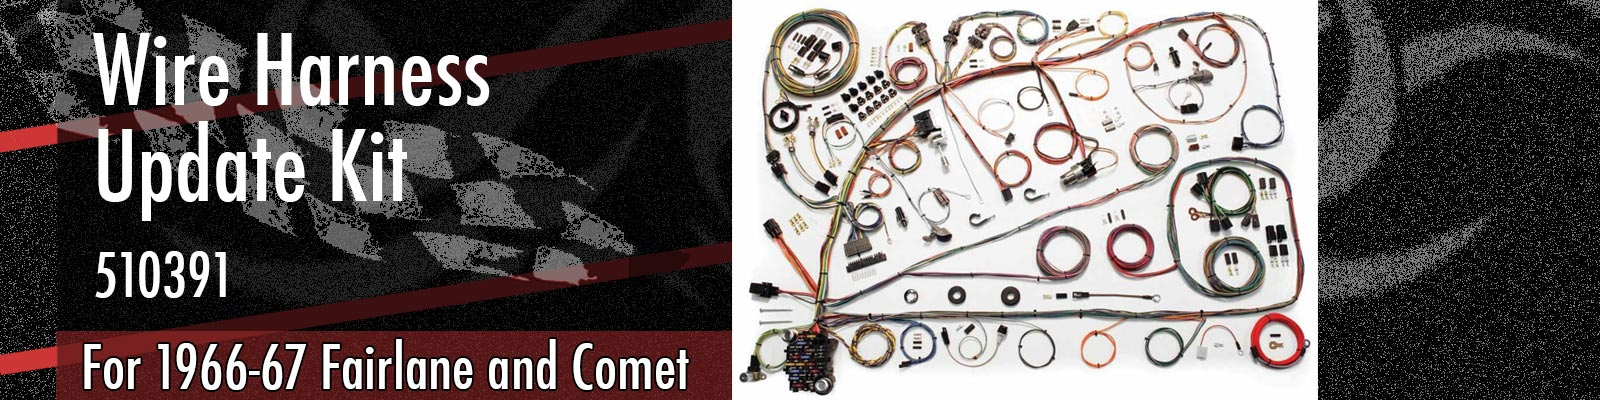 1966-67 Ford Fairlane and Mercury Comet Wiring Harness 510391